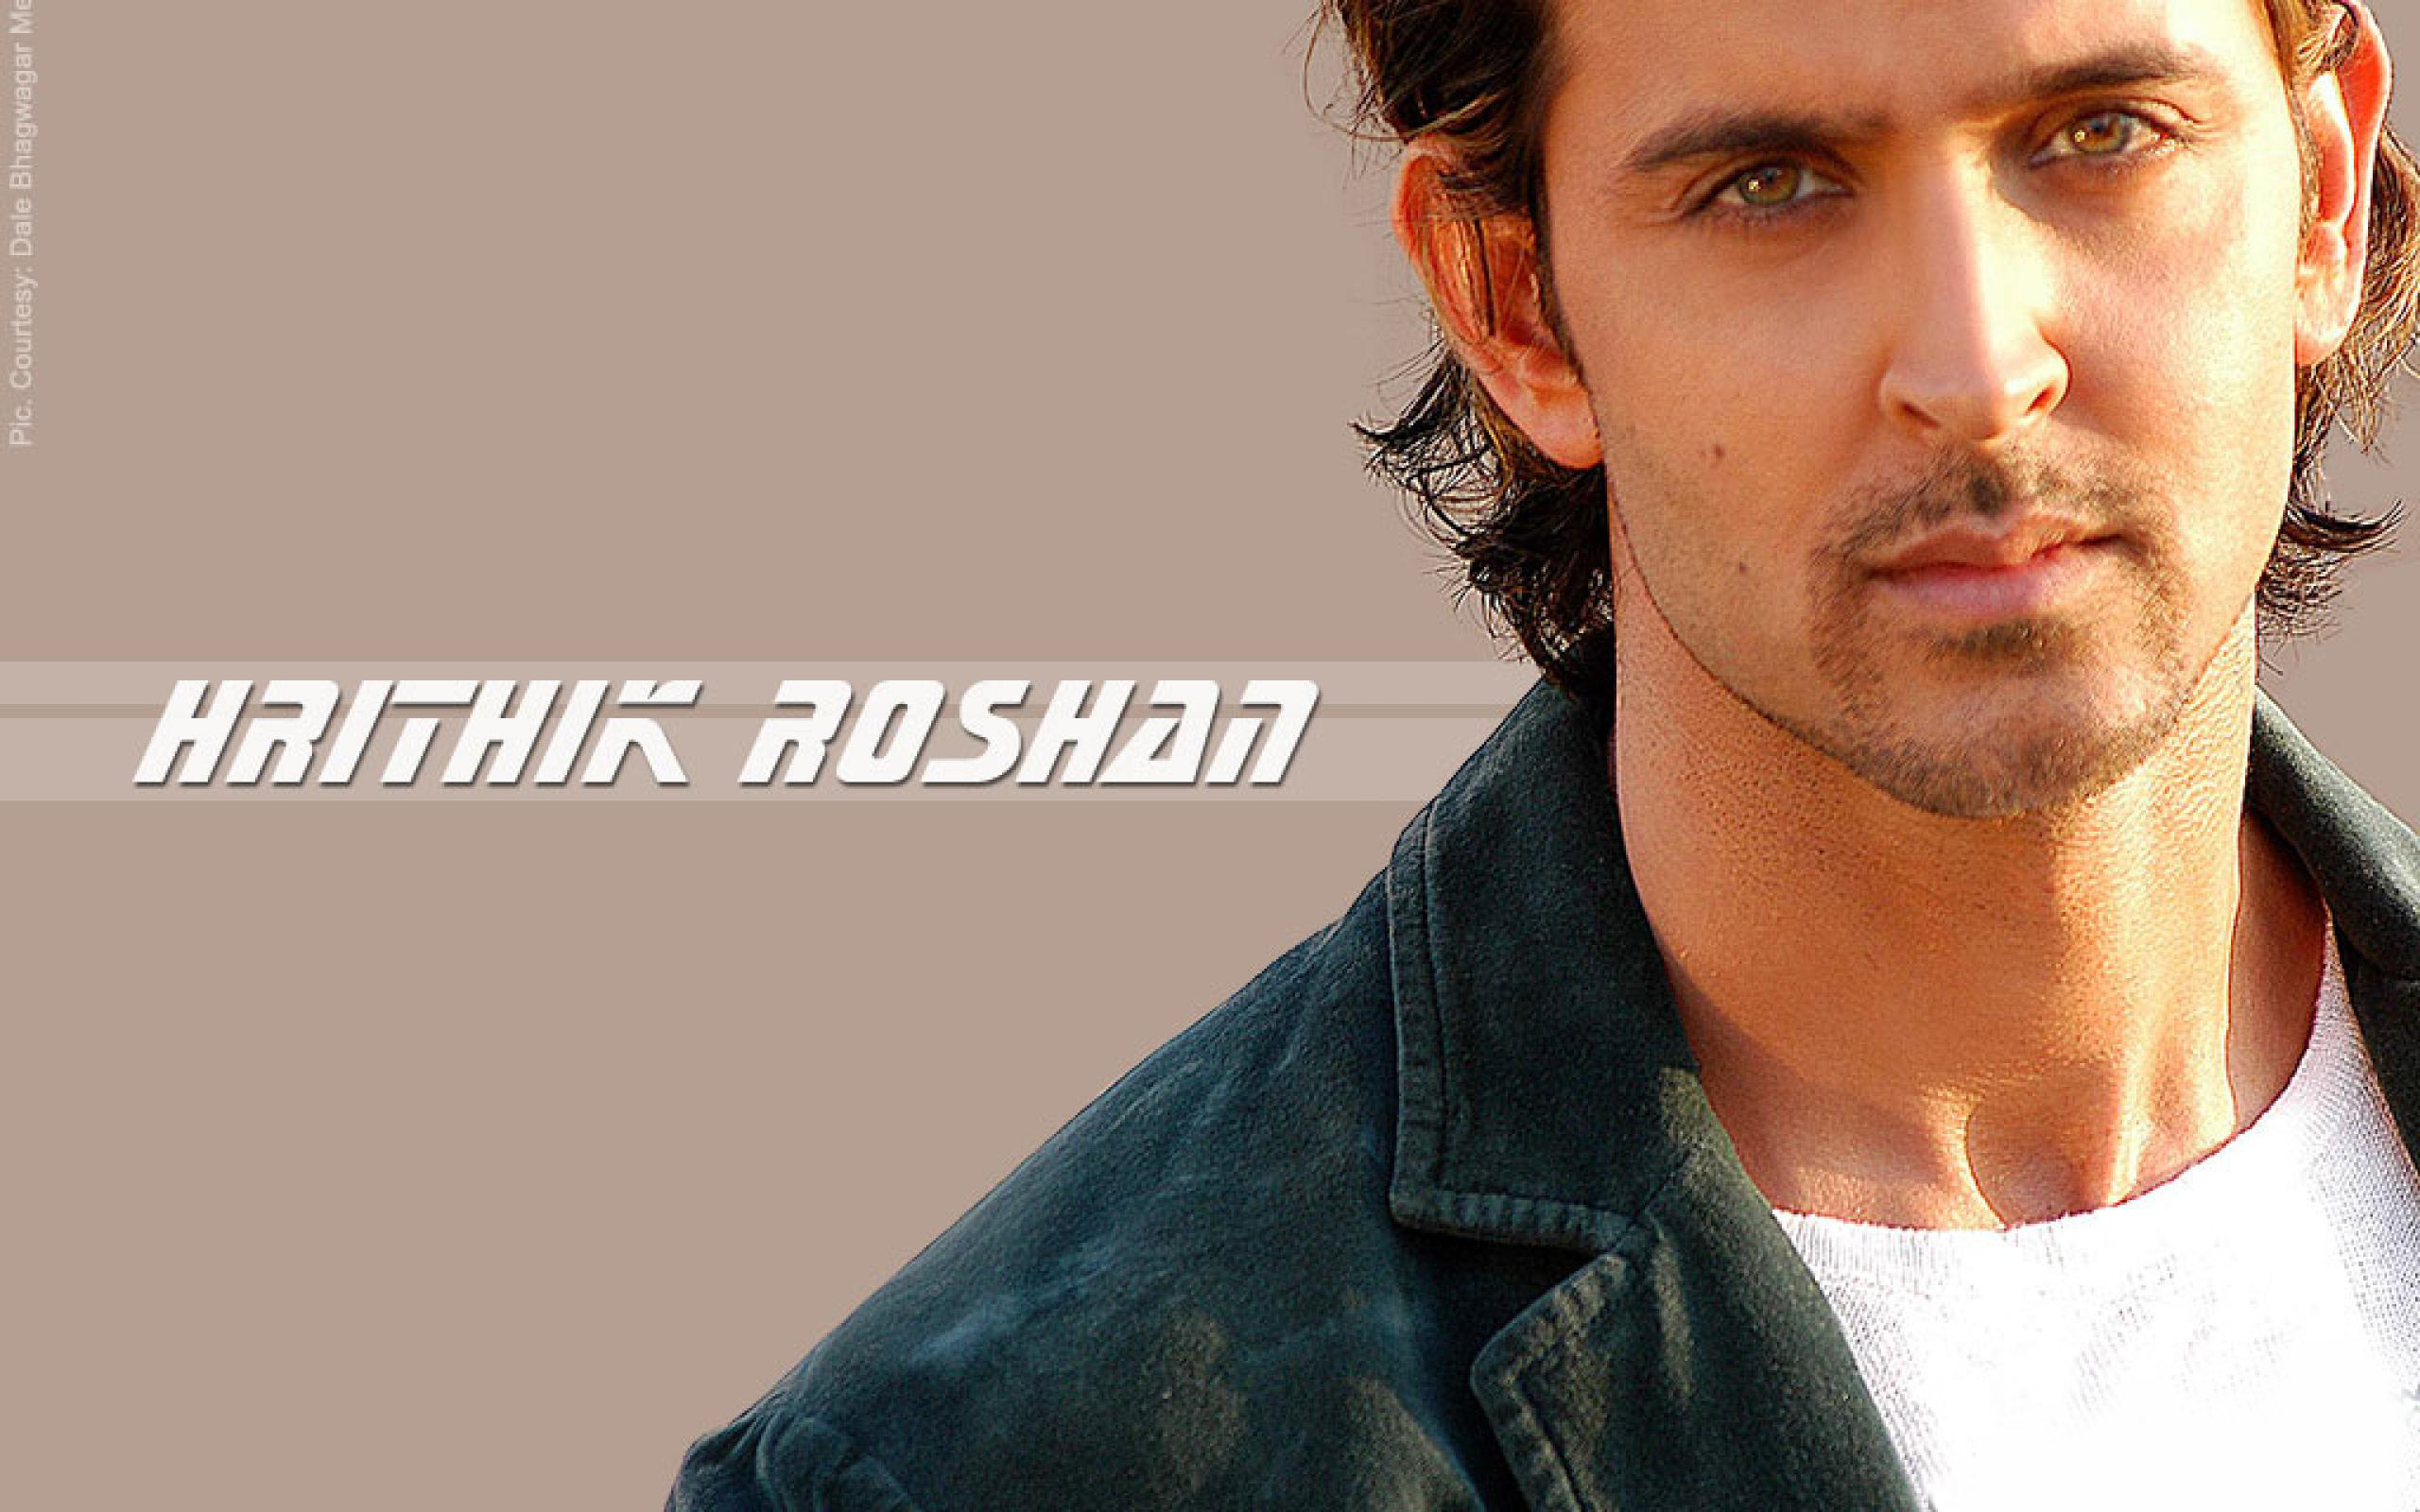 Hrithik roshan hd wallpapers movie hd wallpapers - Hrithik hd pic ...